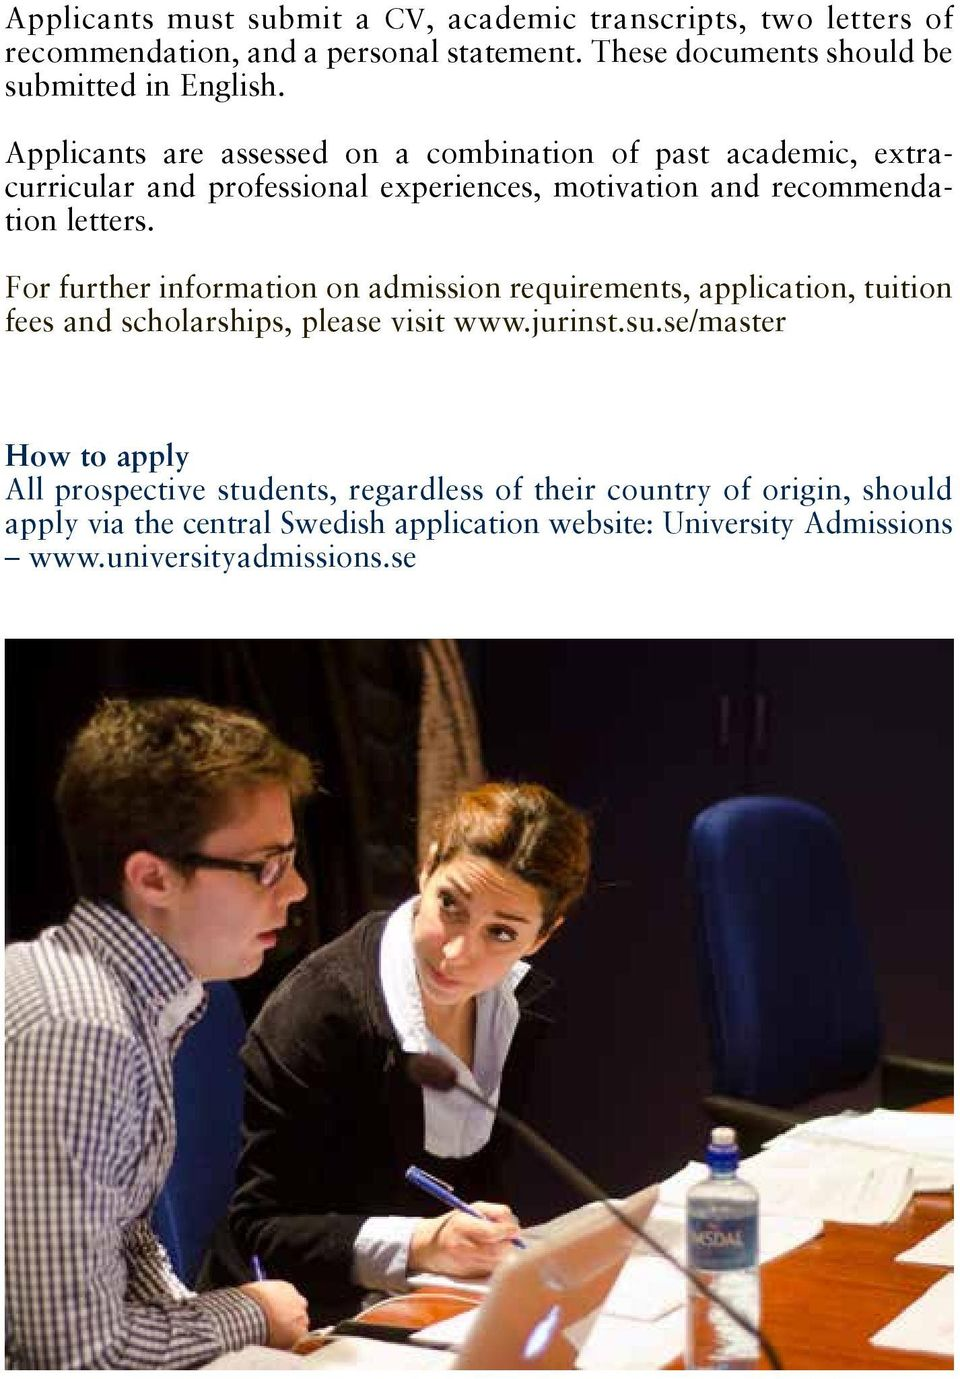 For further information on admission requirements, application, tuition fees and scholarships, please visit www.jurinst.su.